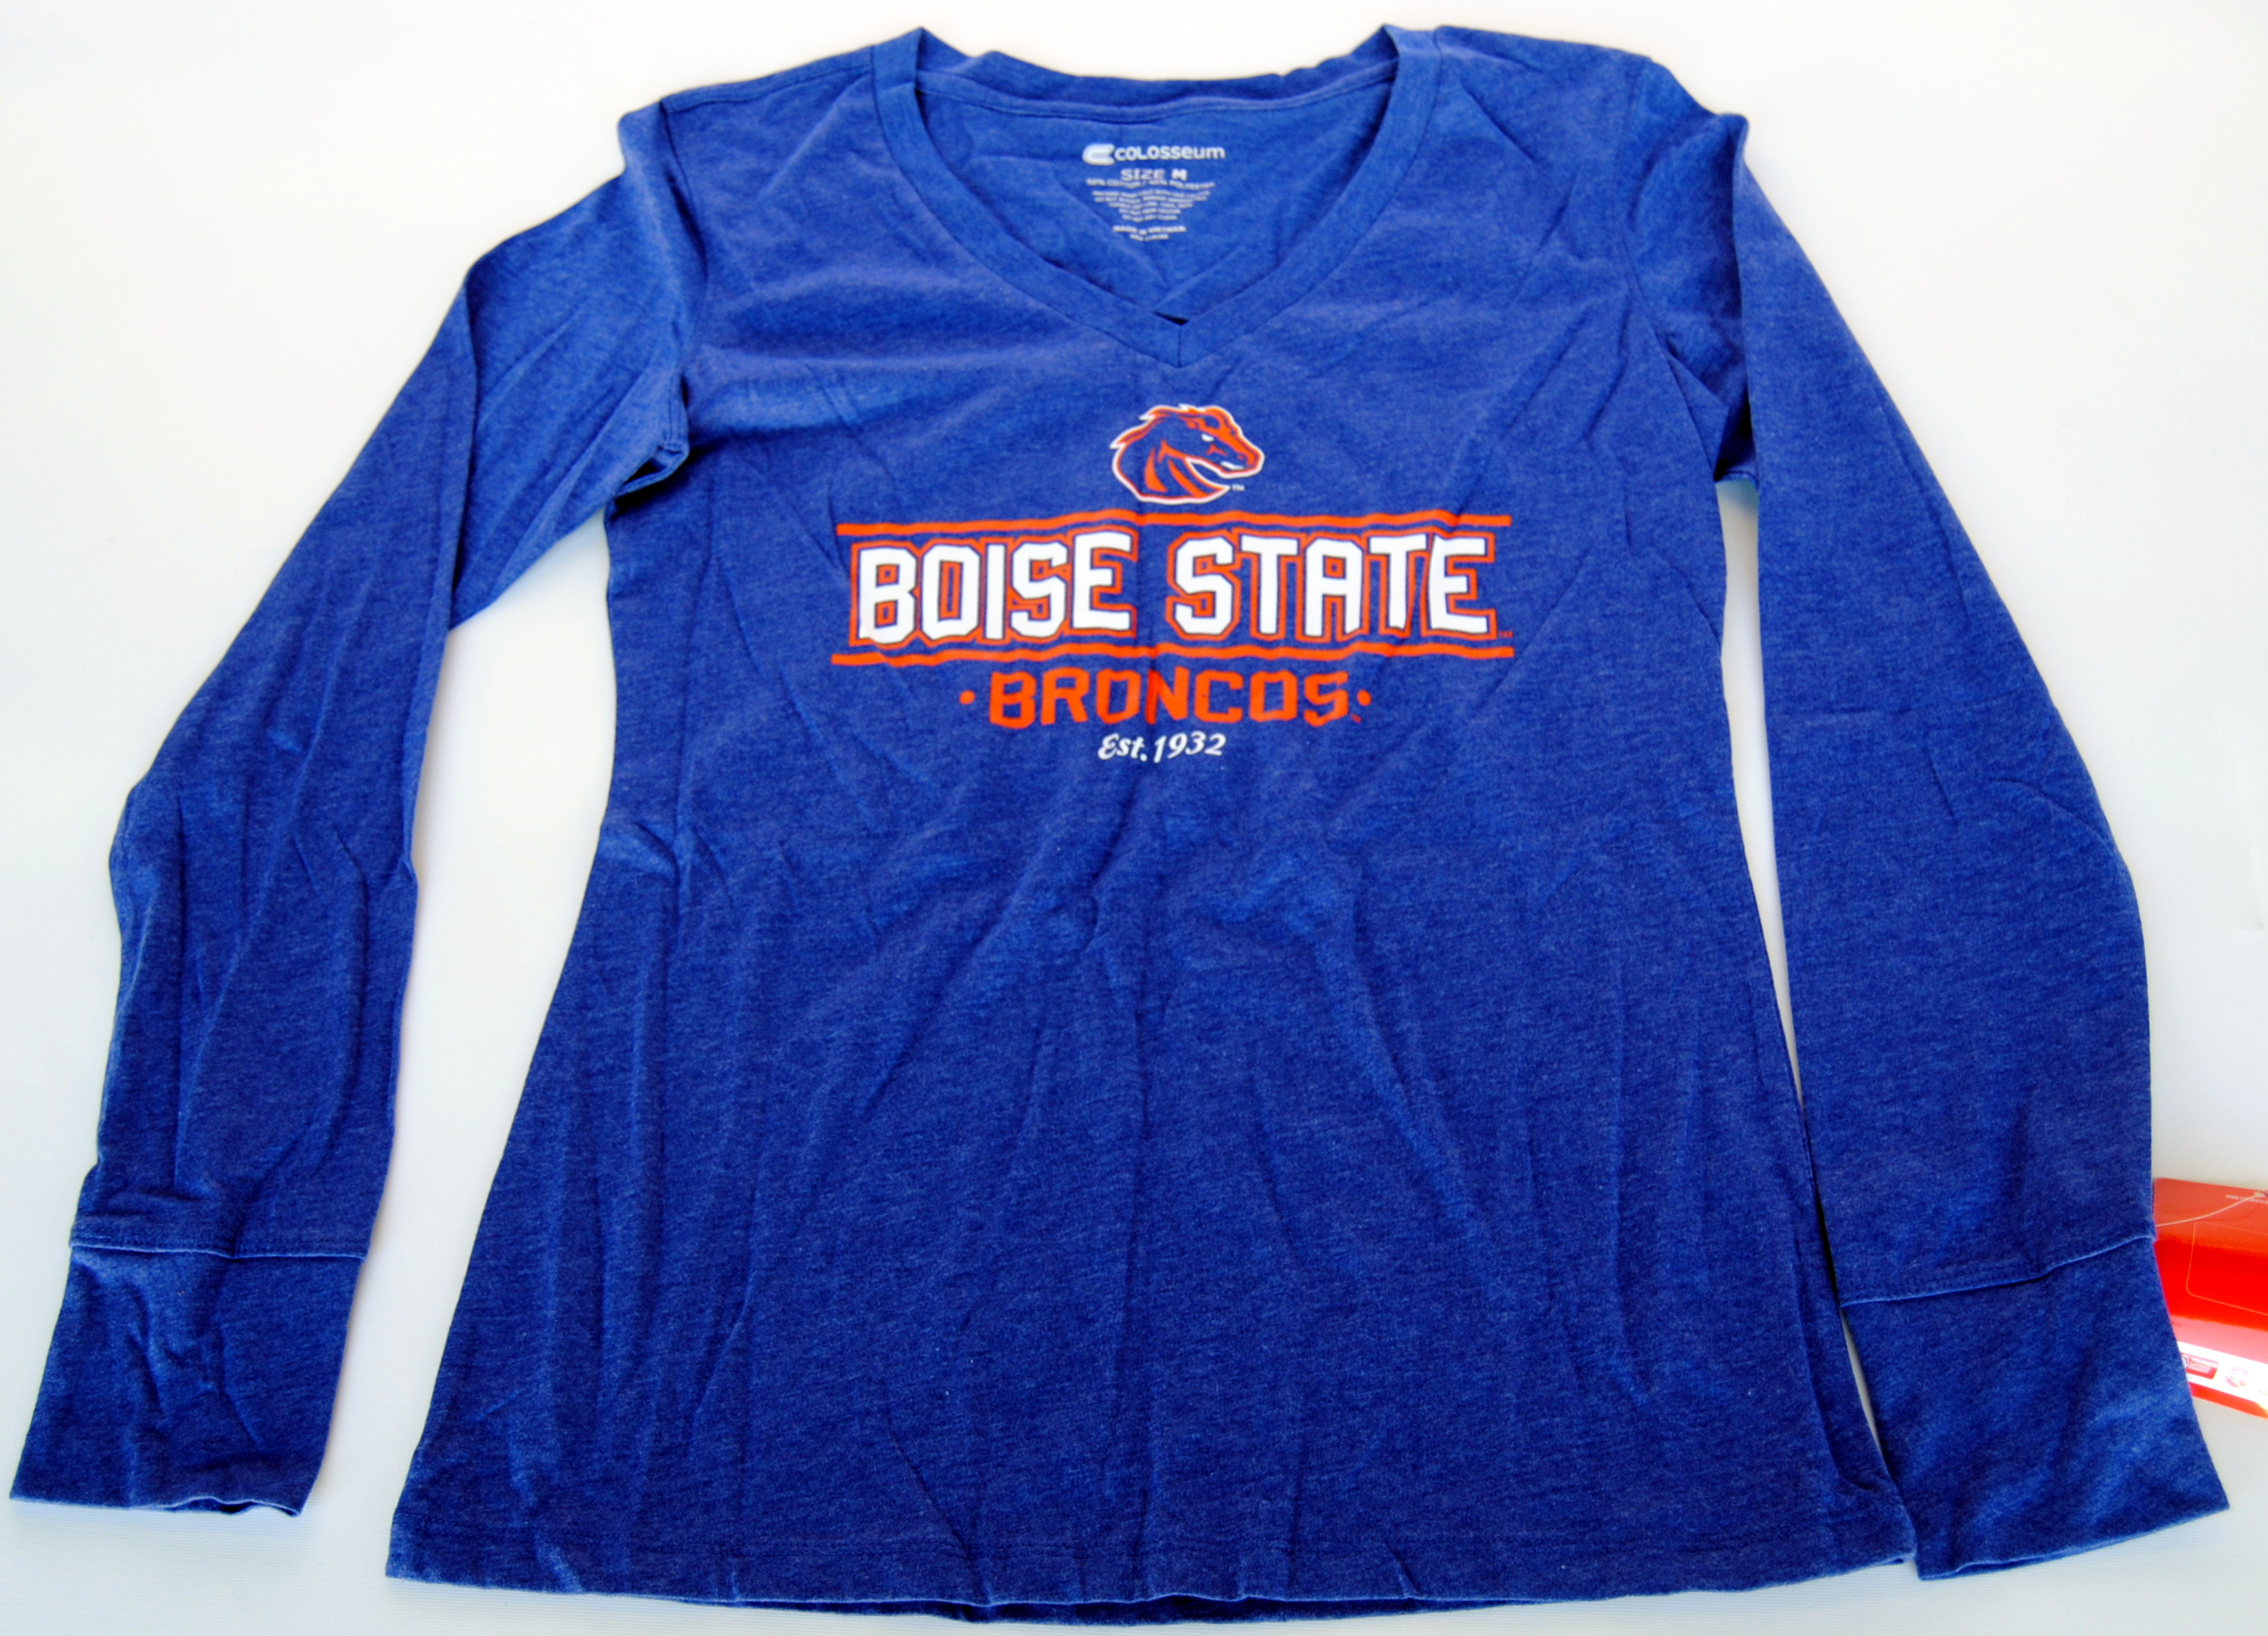 Colosseum Athletics Boise State Broncos Colosseum Athletics Blue Women's Long Sleeve T-Shirt (M) at Sears.com